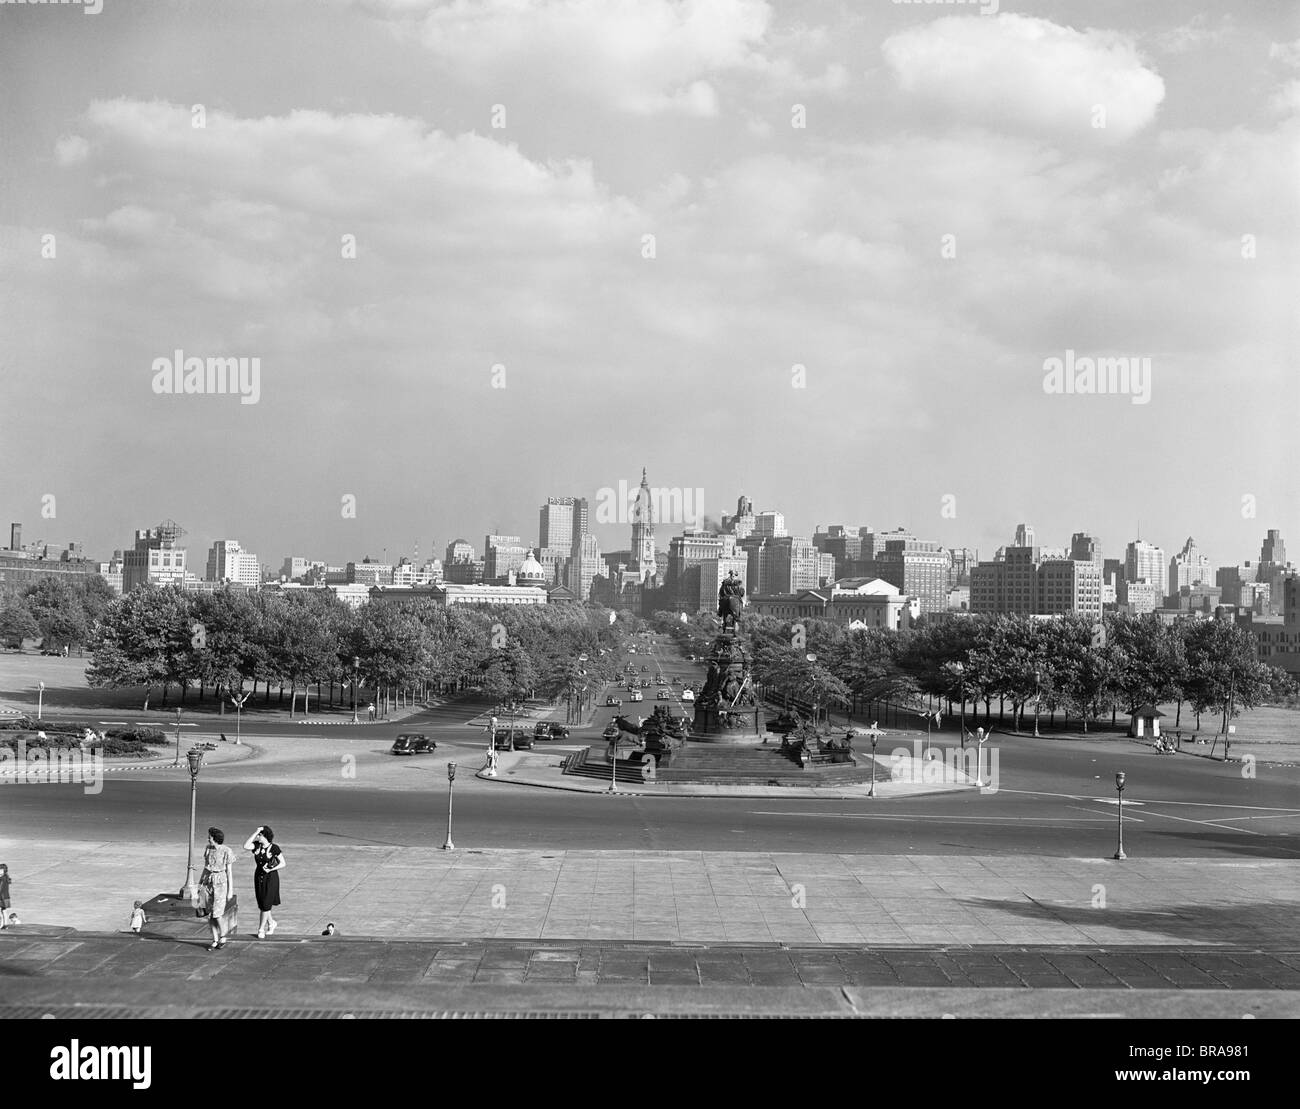 1946 SKYLINE OF PHILADELPHIA FROM STEPS OF THE ART MUSEUM LOOKING DOWN PARKWAY TO CITY HALL - Stock Image